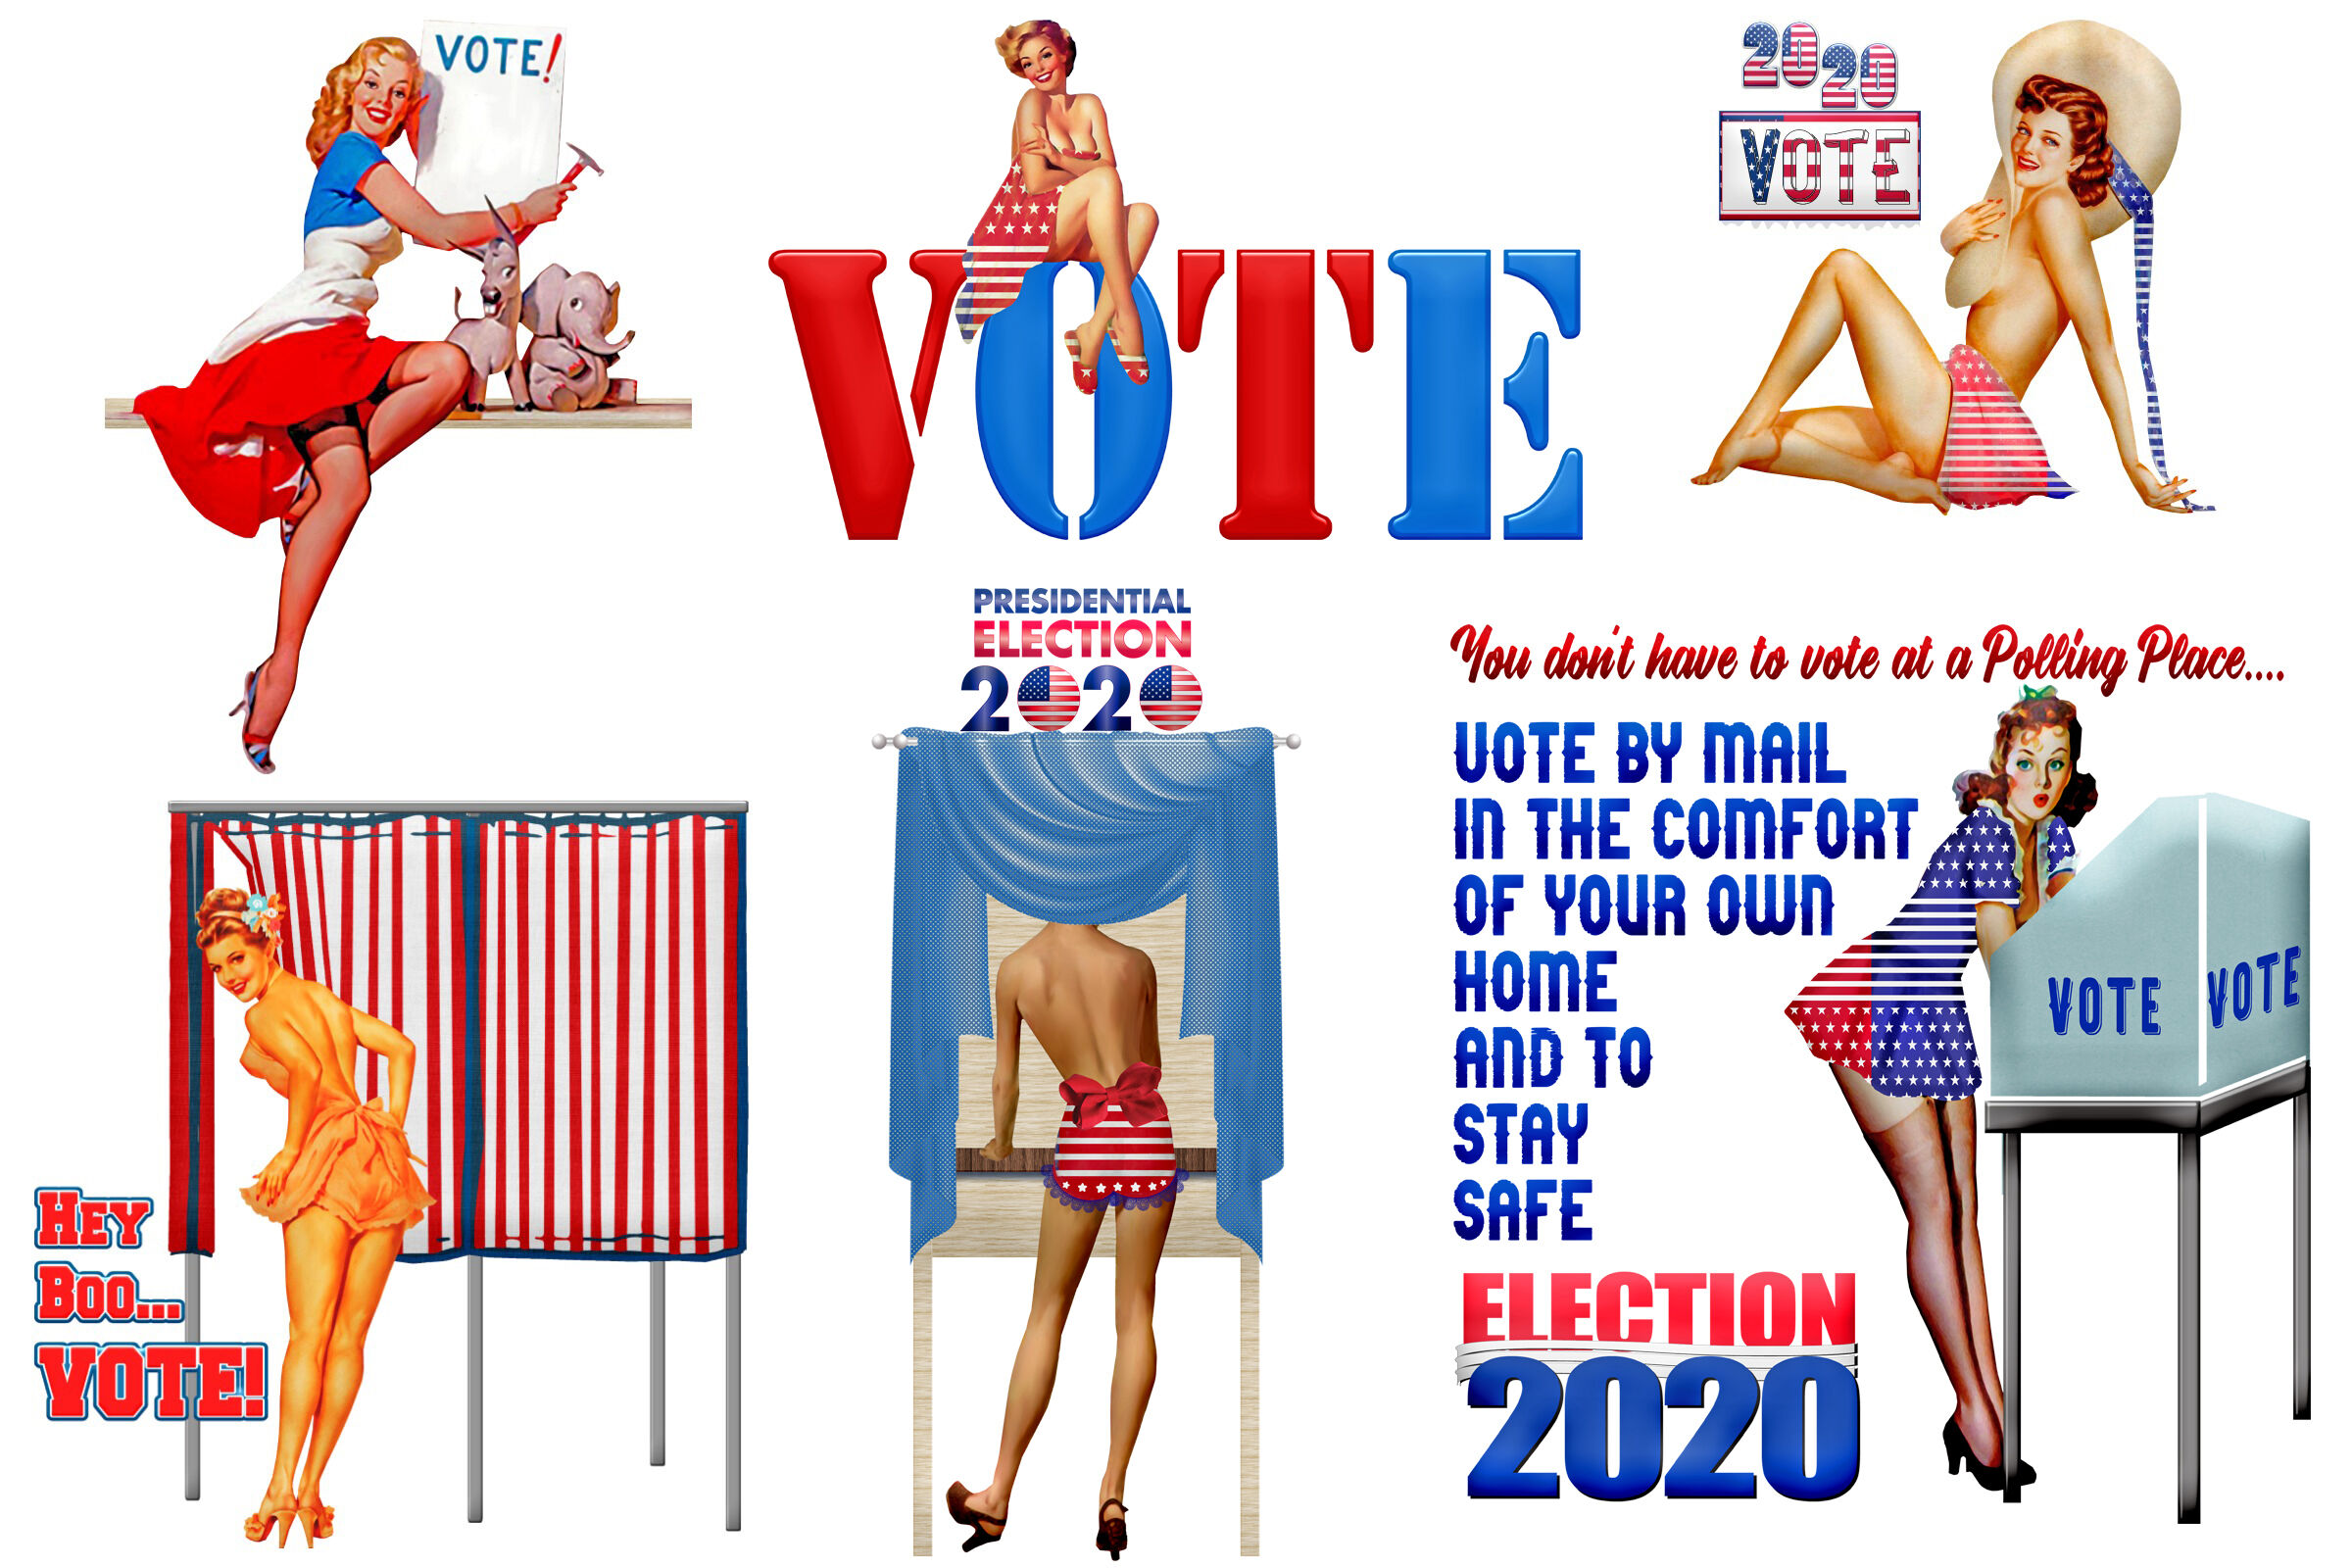 Voting Retro Pin Up Girls Clip Art By Me and Ameliè ...